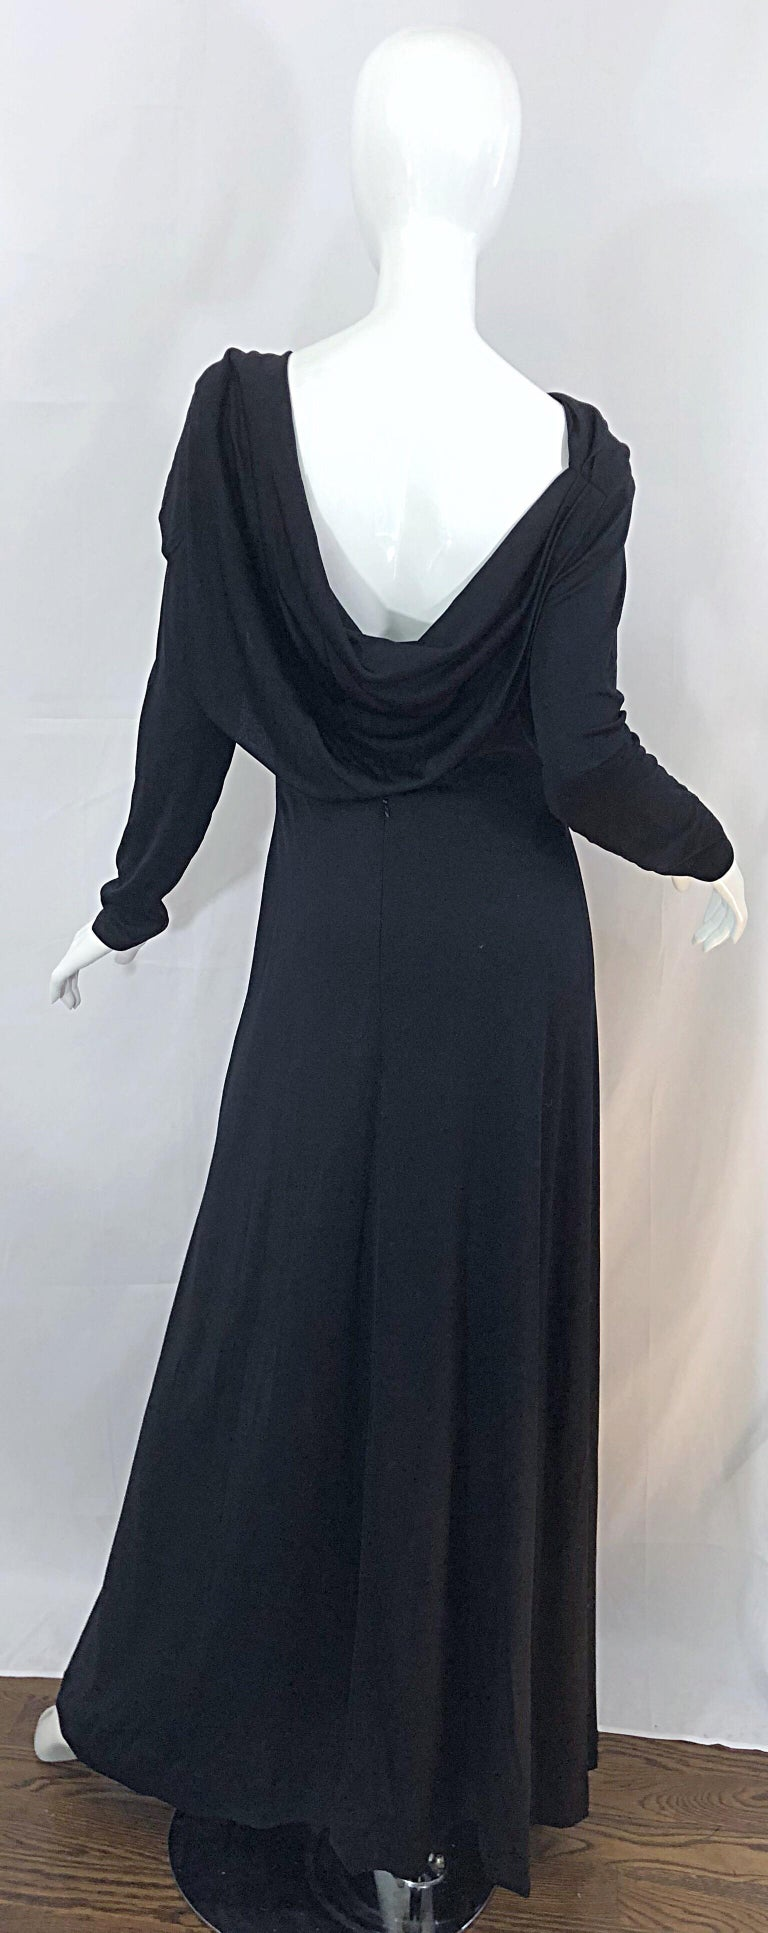 Beautiful 70s ESTEVEZ Couture black long sleeve jersey cape gown! Features a dramatic high neck with a wonderful low-cut draped back that reveals just the right amount of skin. From the side, the dress looks to have a cape. Hidden zipper up the back